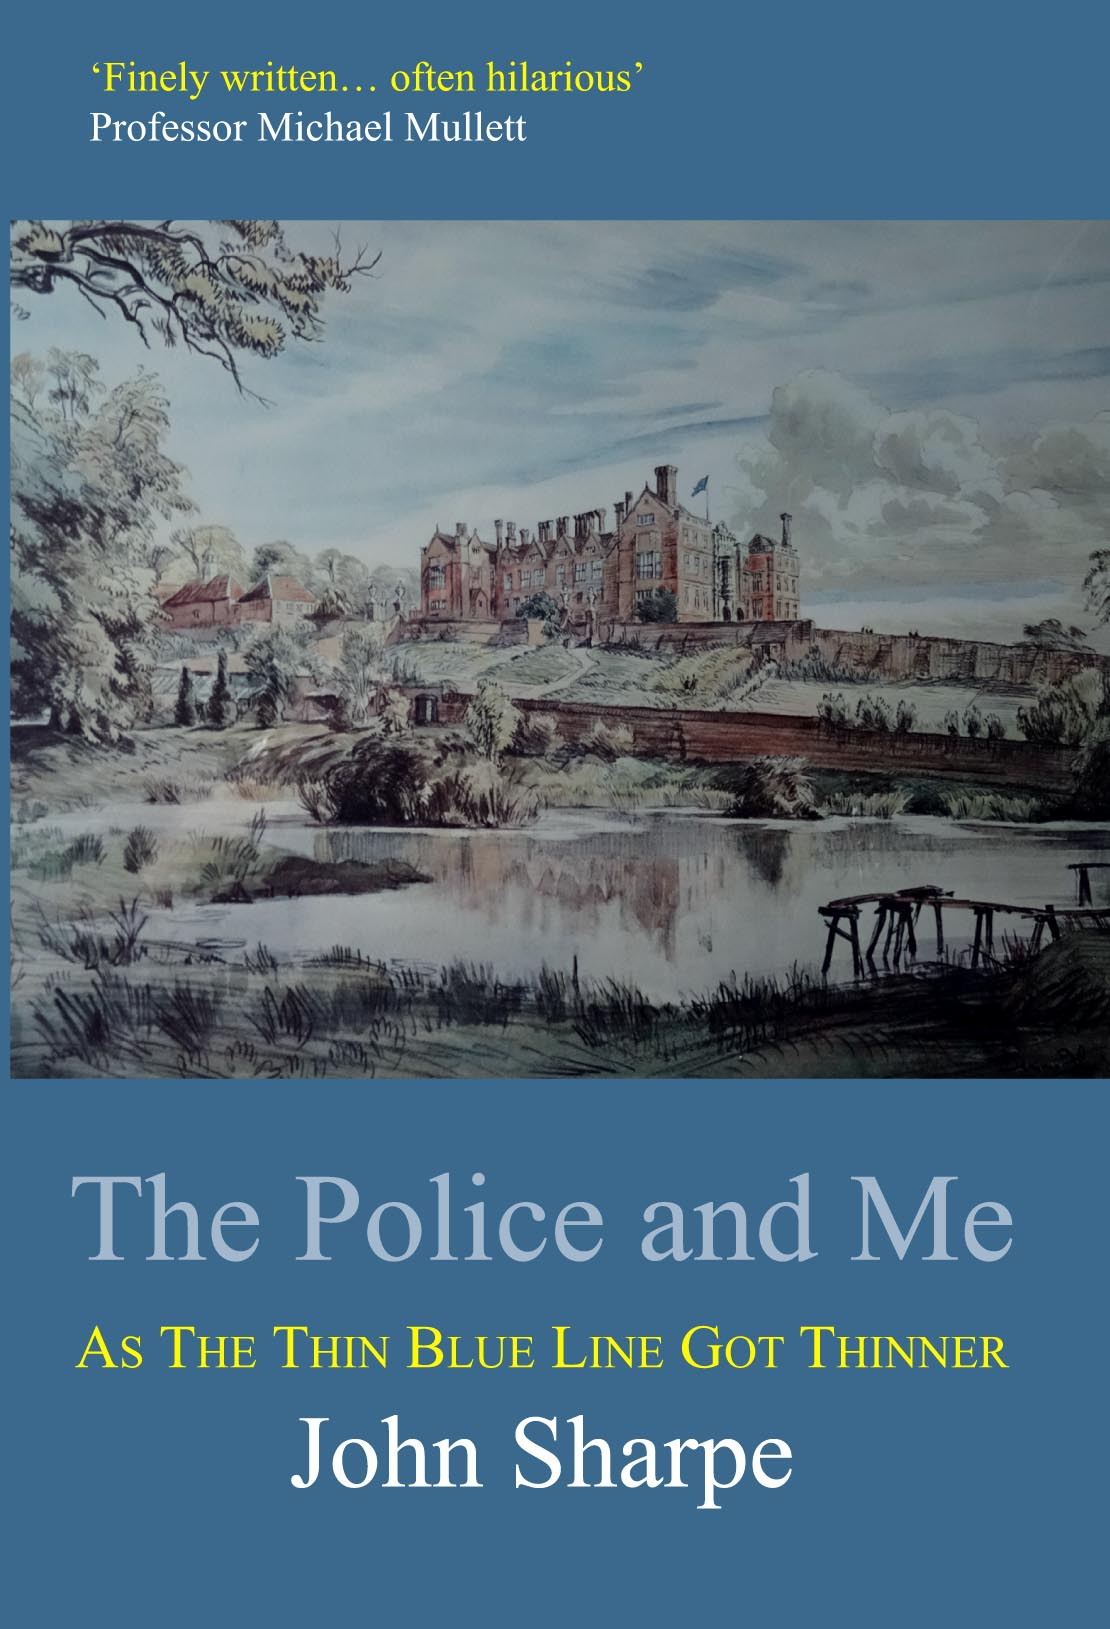 The Police and Me: As the Thin Blue Line Got Thinner